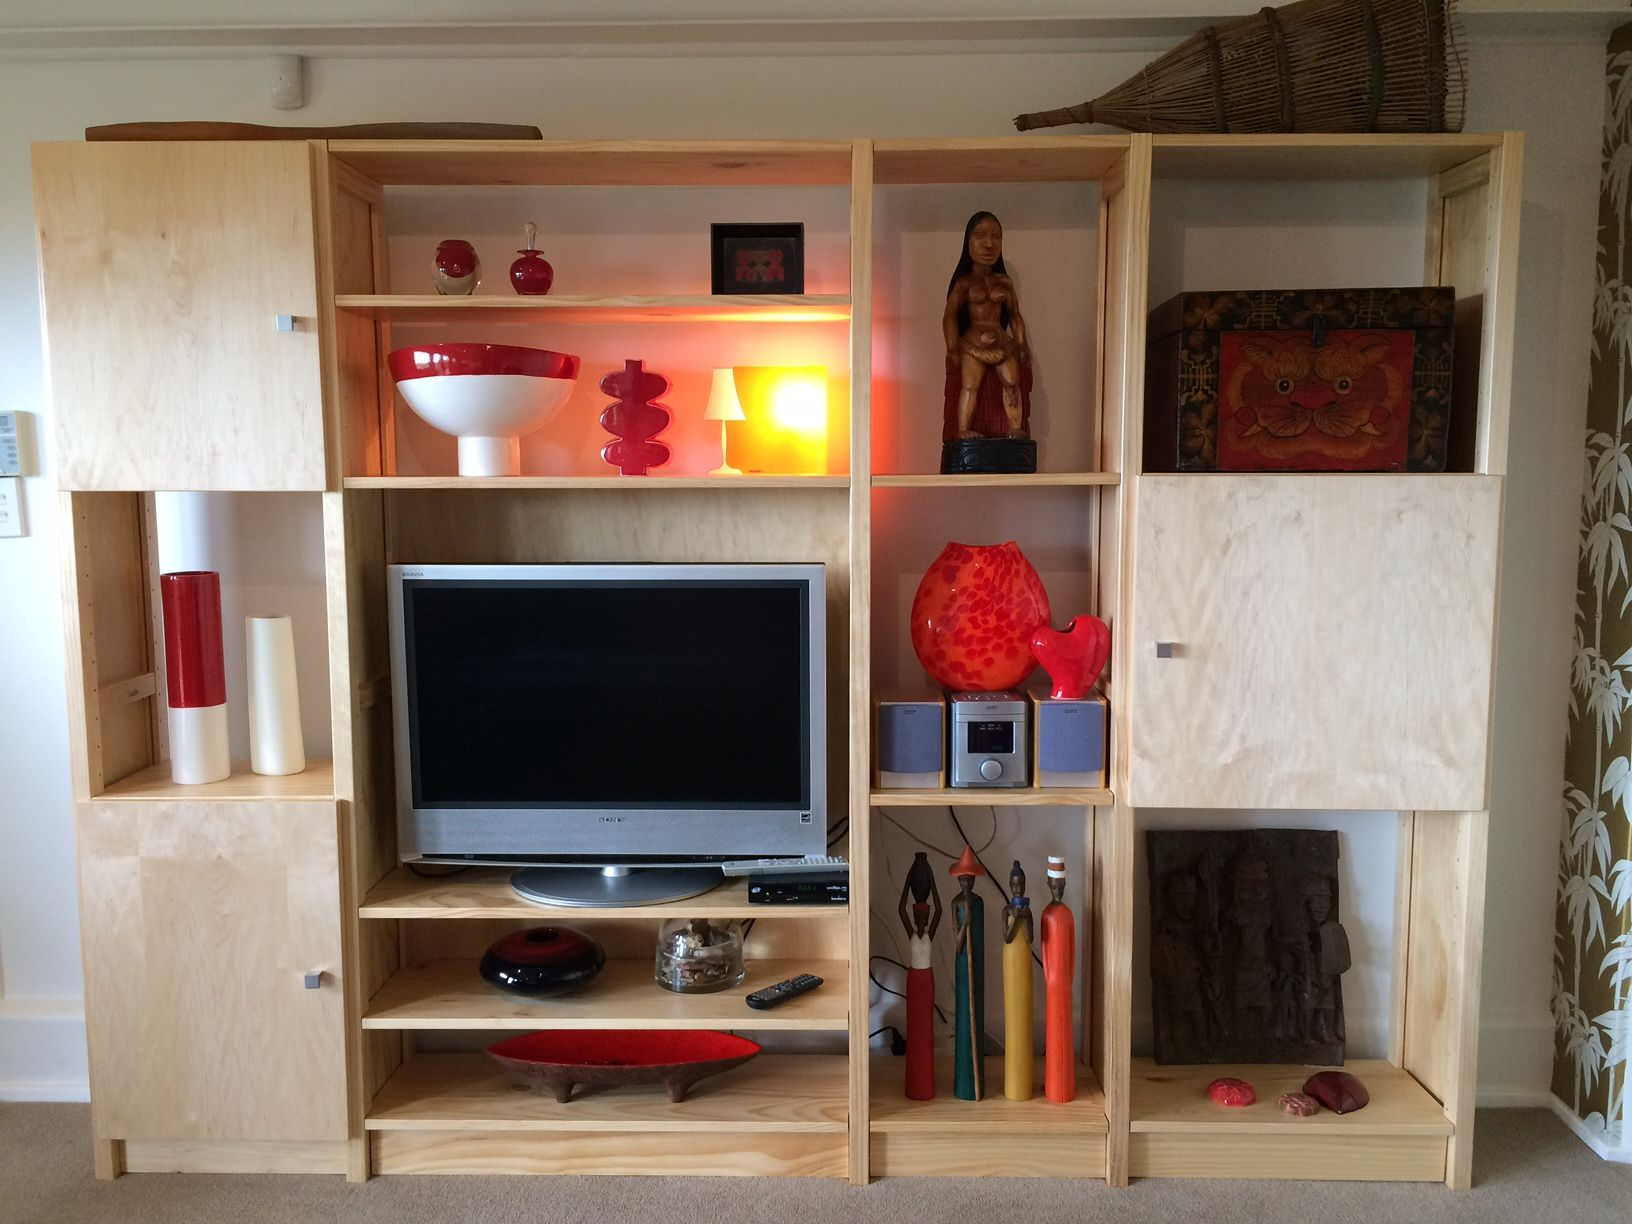 Space Saving Solutions Jane 39s New Unit To Fit The Smaller Tv By Lundia Lundia